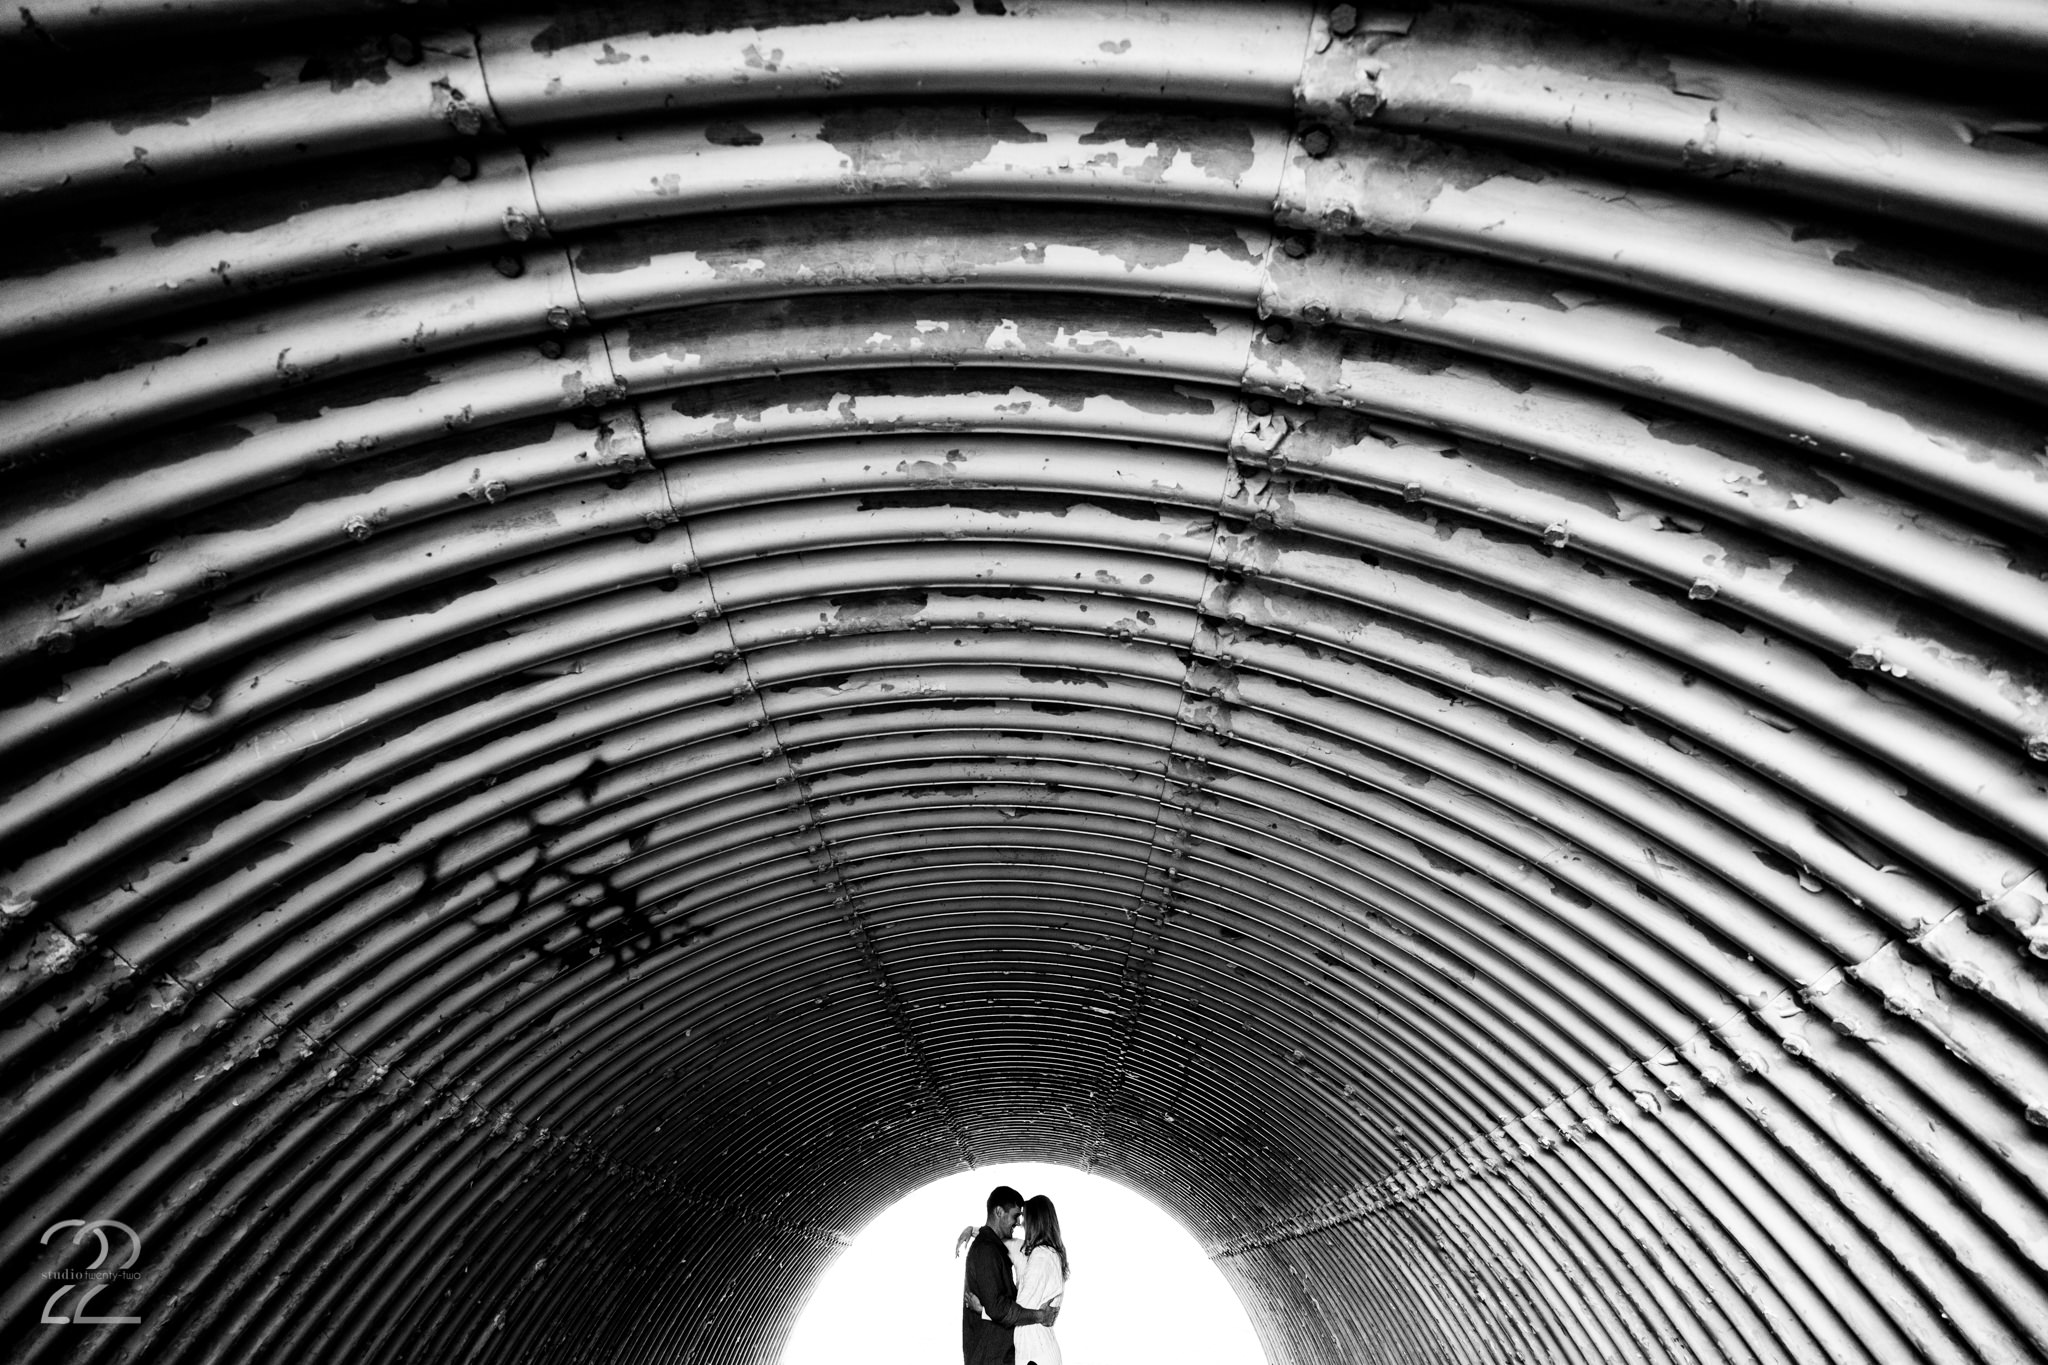 For those of you who are not nature lovers, have no fear because your wedding and engagement photos should represent you! Studio 22 loves to take photographs in all kinds of locations. Industrial and urban sites can provide for really fun settings and make for photos that no one else has. Megan at Studio 22 has all the tools needed to make any location look and feel spectacular in order to showcase your personality!